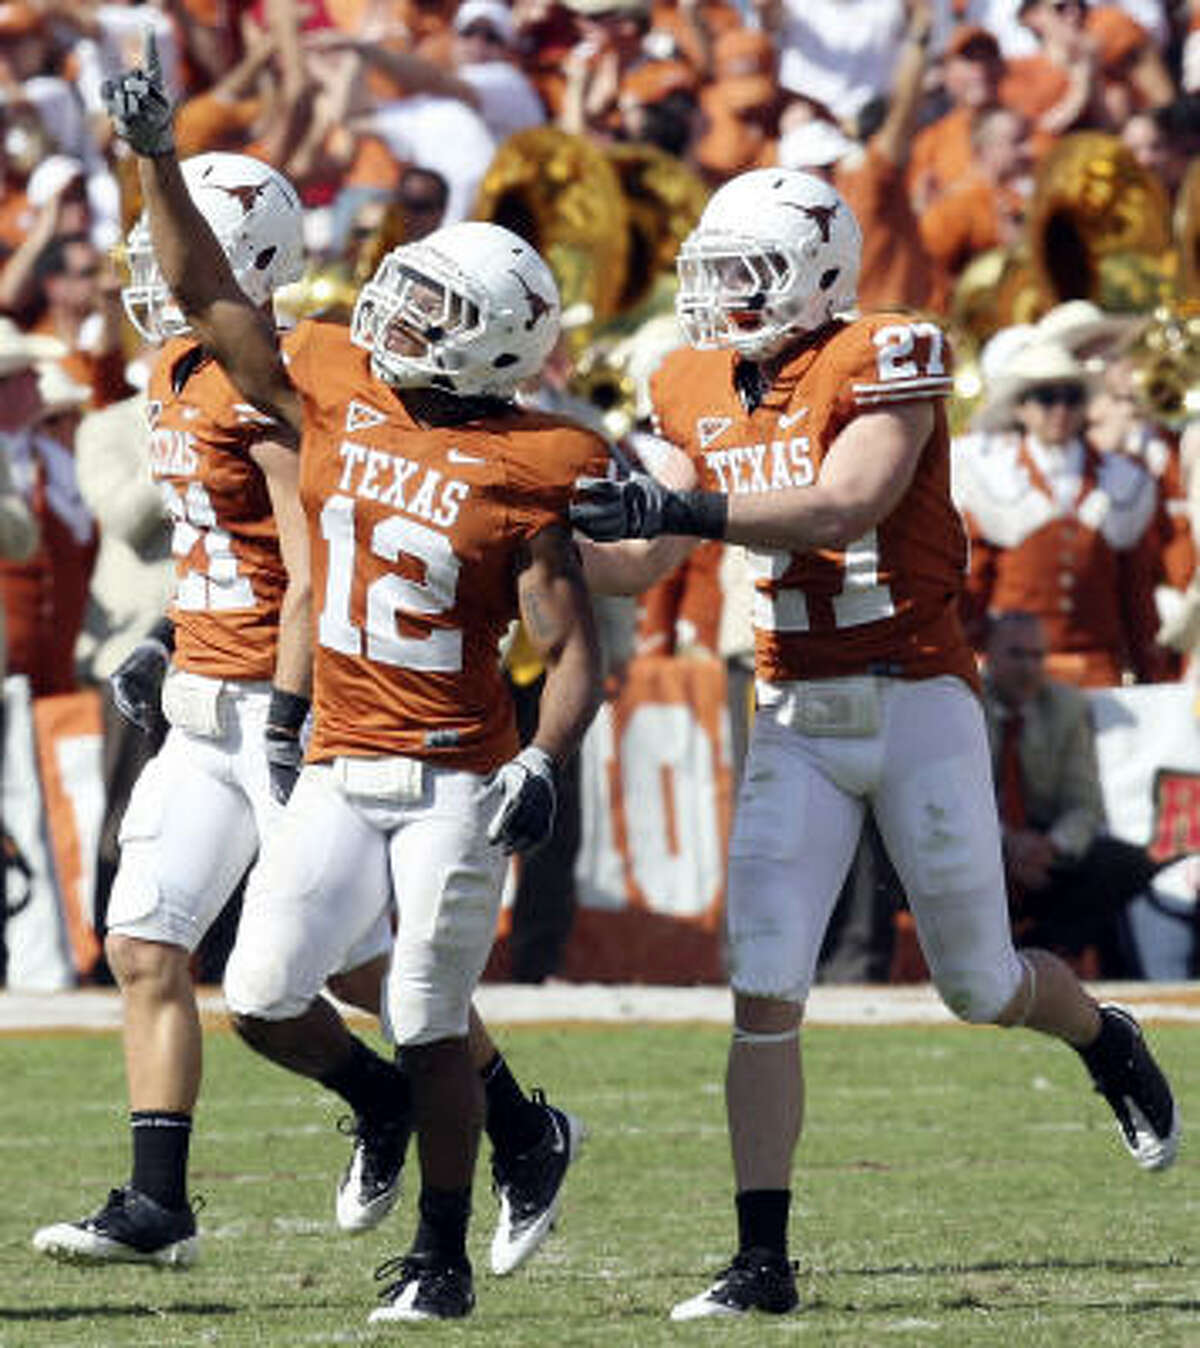 The third-ranked Texas Longhorns are riding high after Saturday's 16-13 win over arch rival Oklahoma.